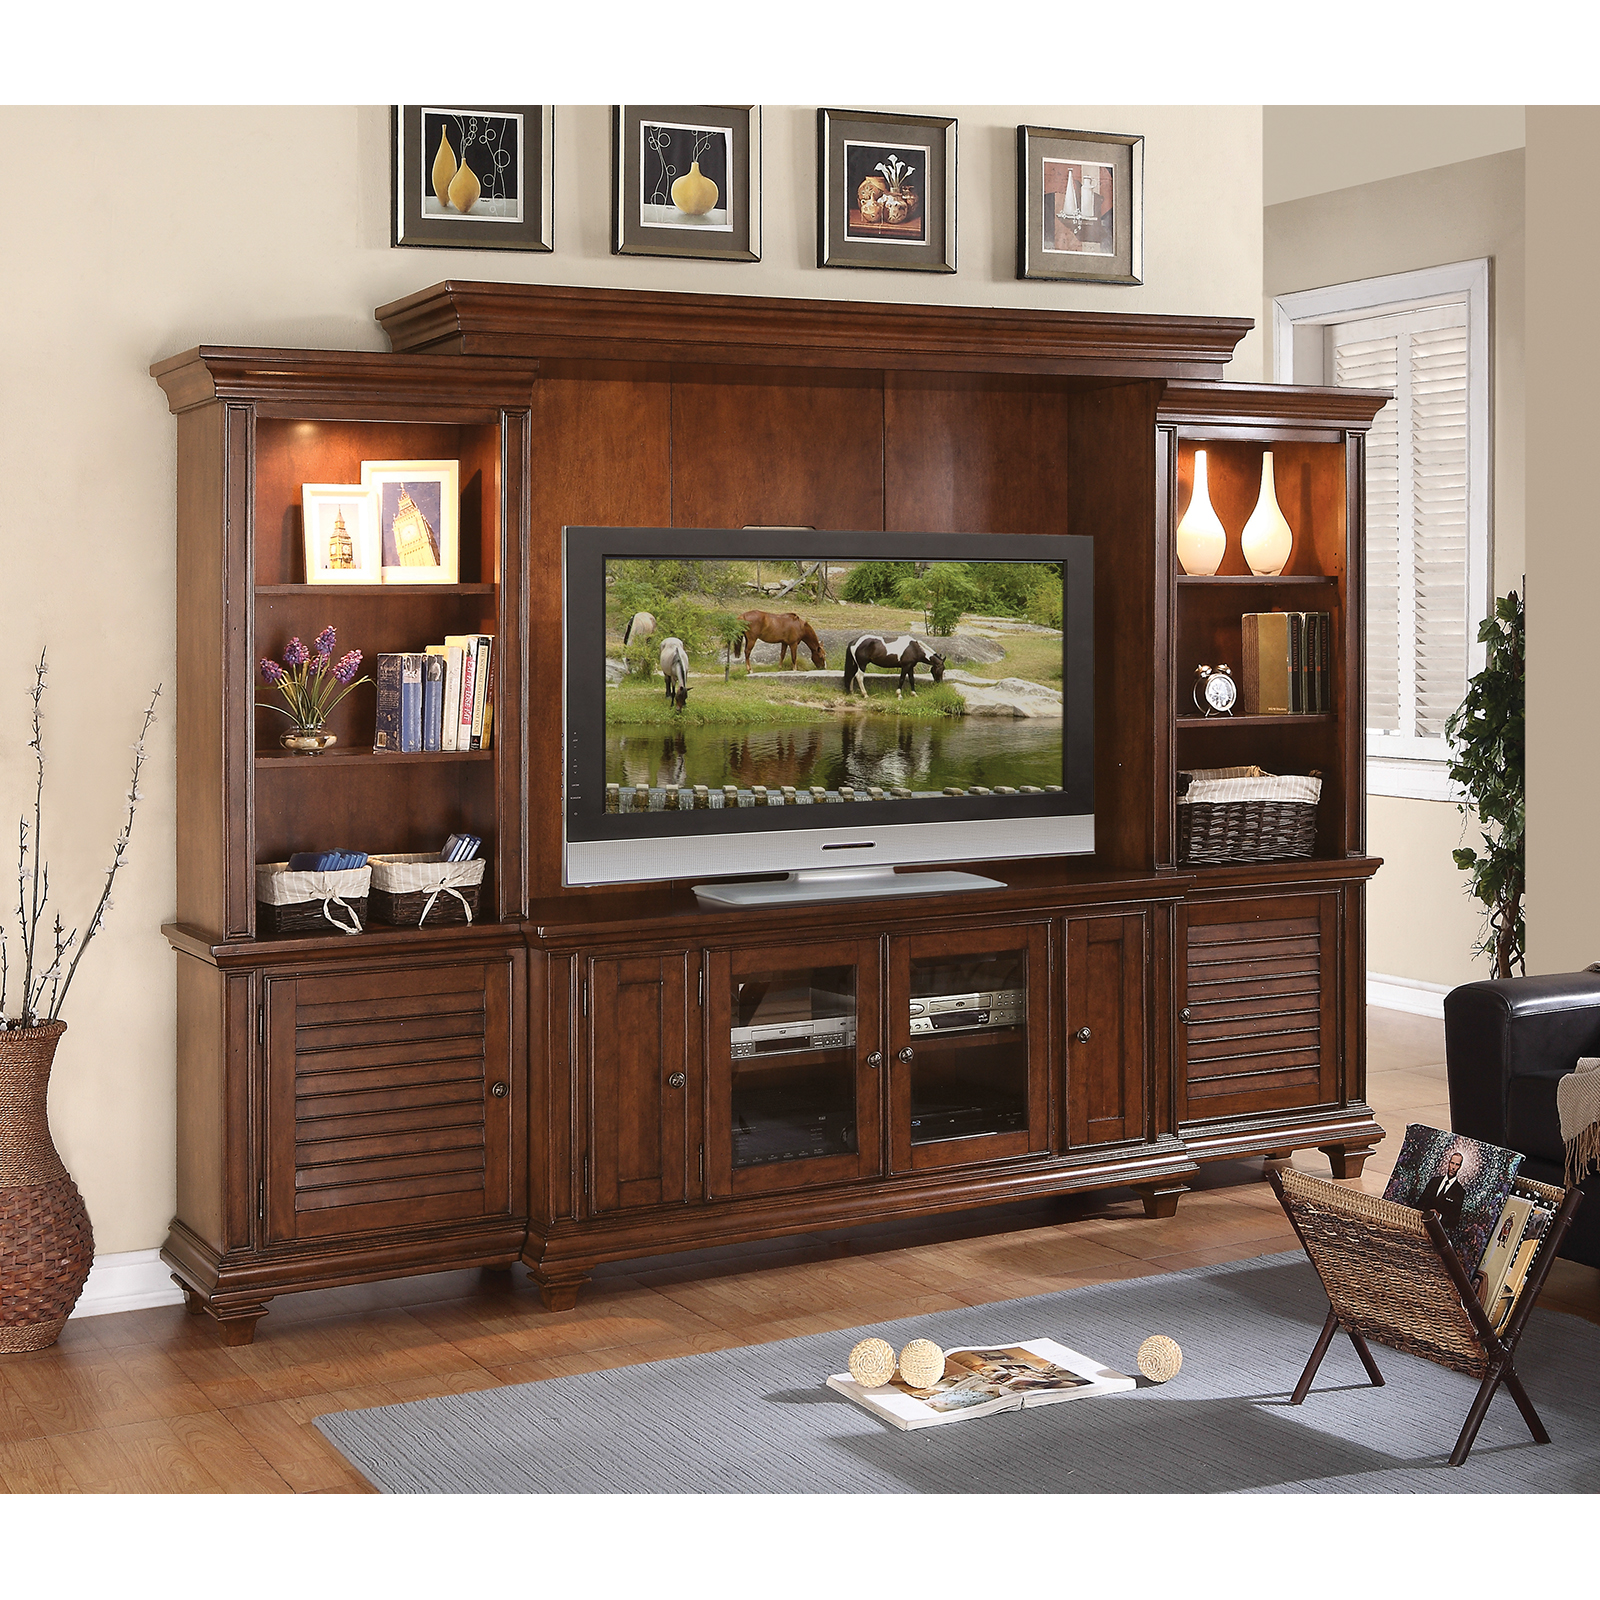 Riverside Windward Bay Entertainment Center Warm Rum